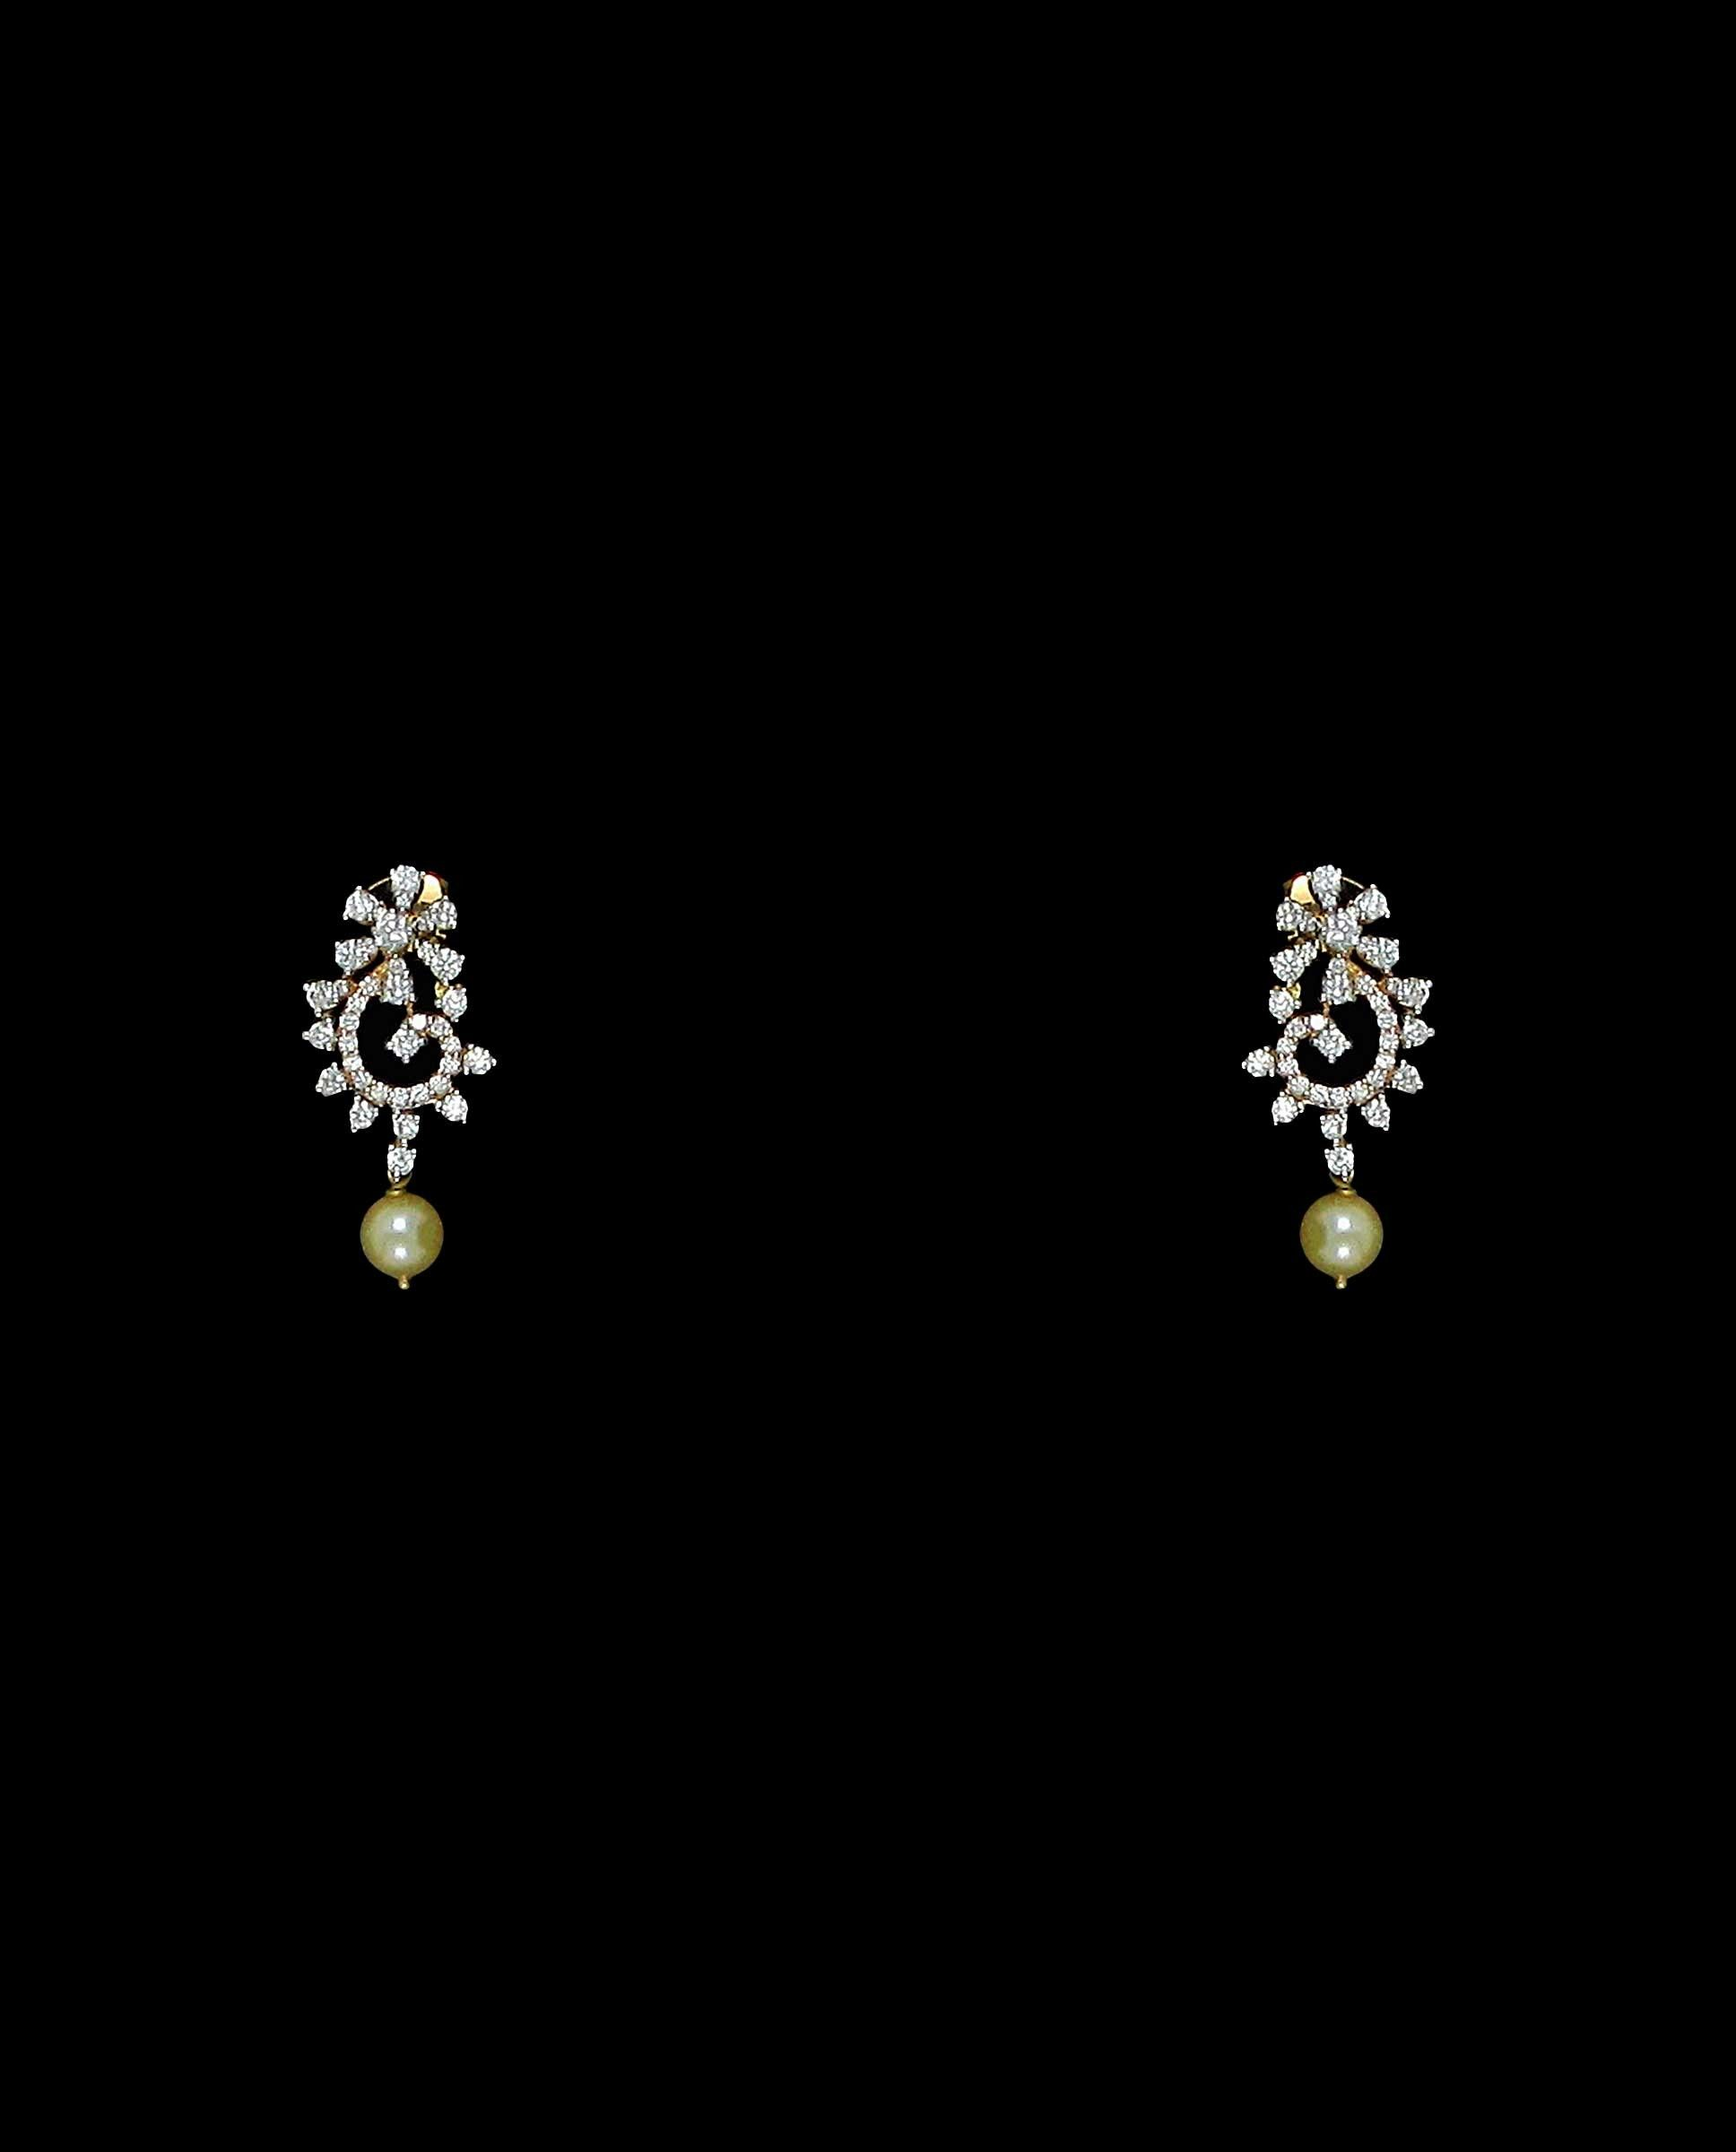 Diamond Earring Earrings Diamond Jewelry